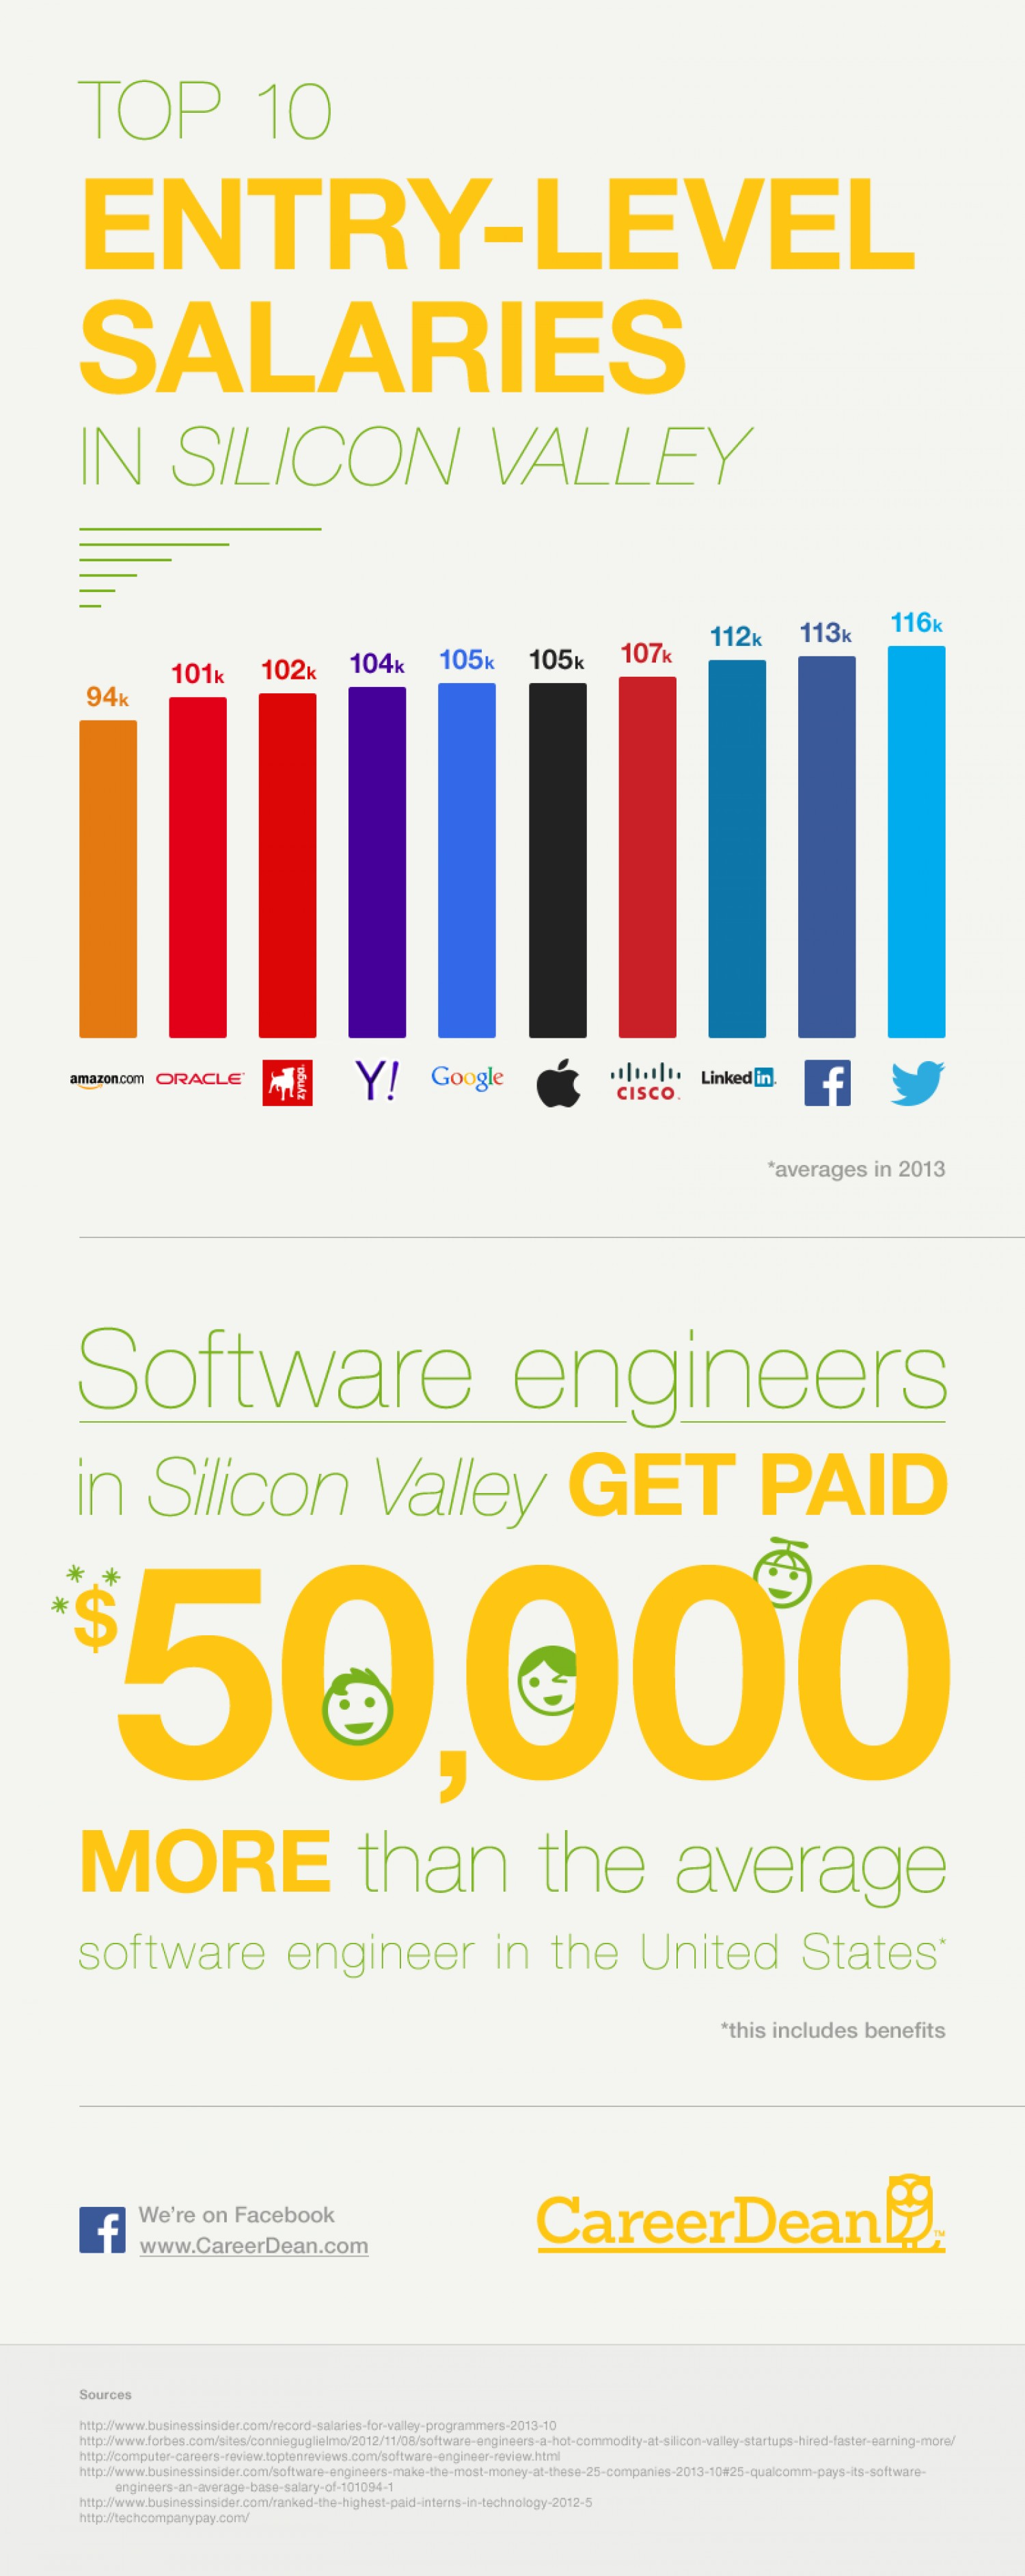 Top 10 Entry-Level Salary In Silicon Valley